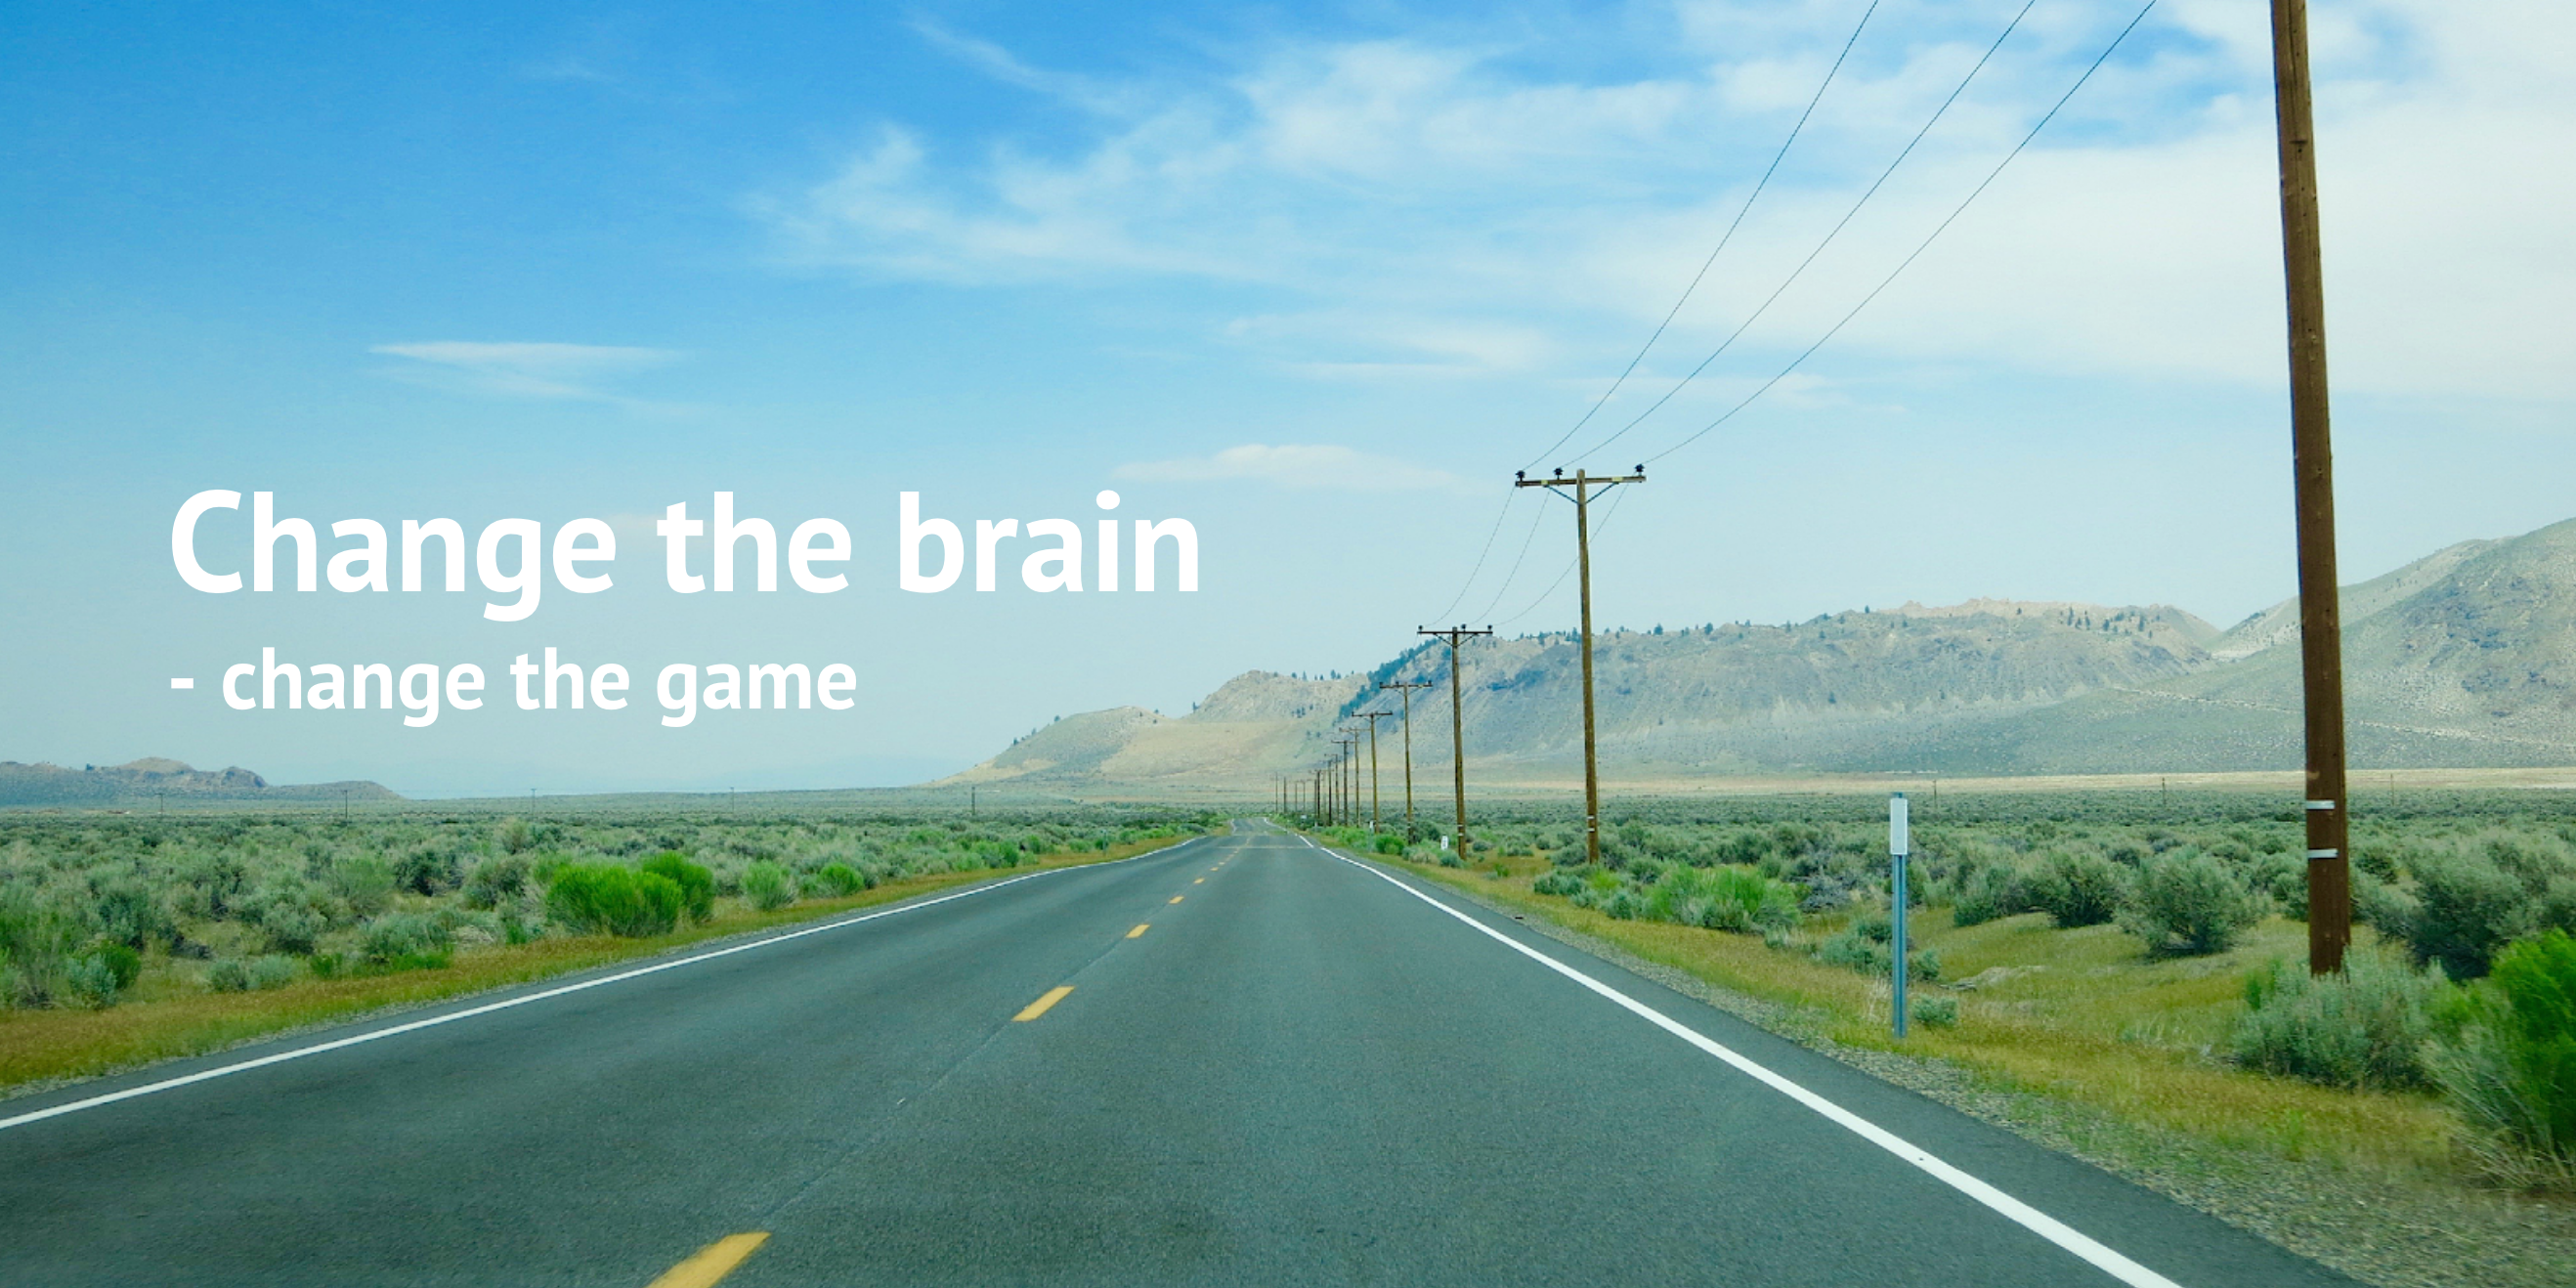 Change the brain - change the game